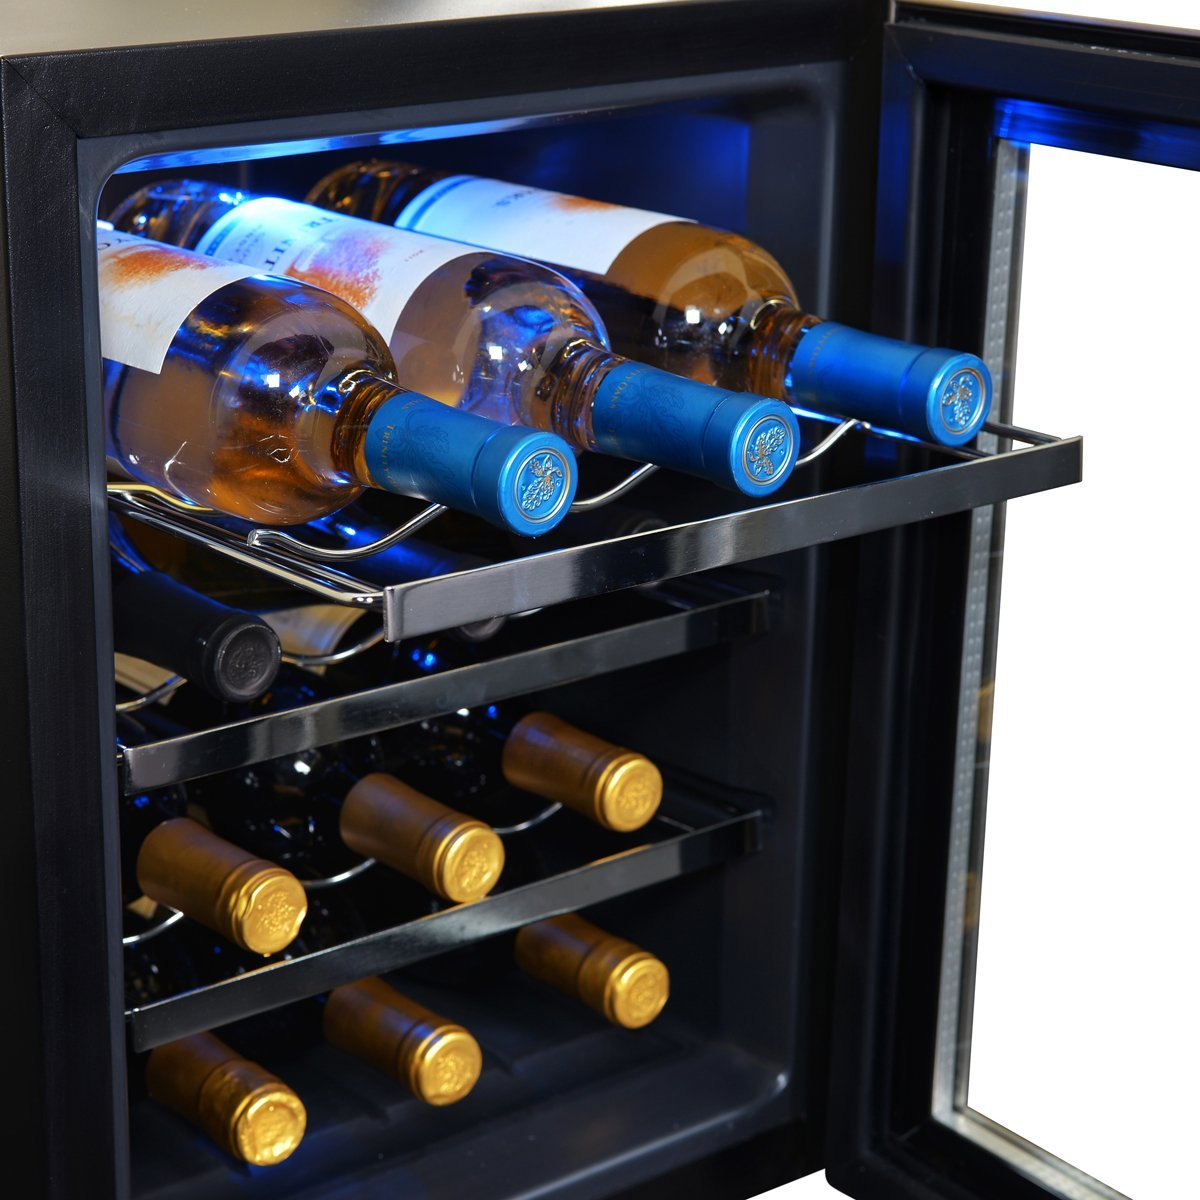 Newair Aw 121e Thermoelectric Wine Cooler 12 Bottle